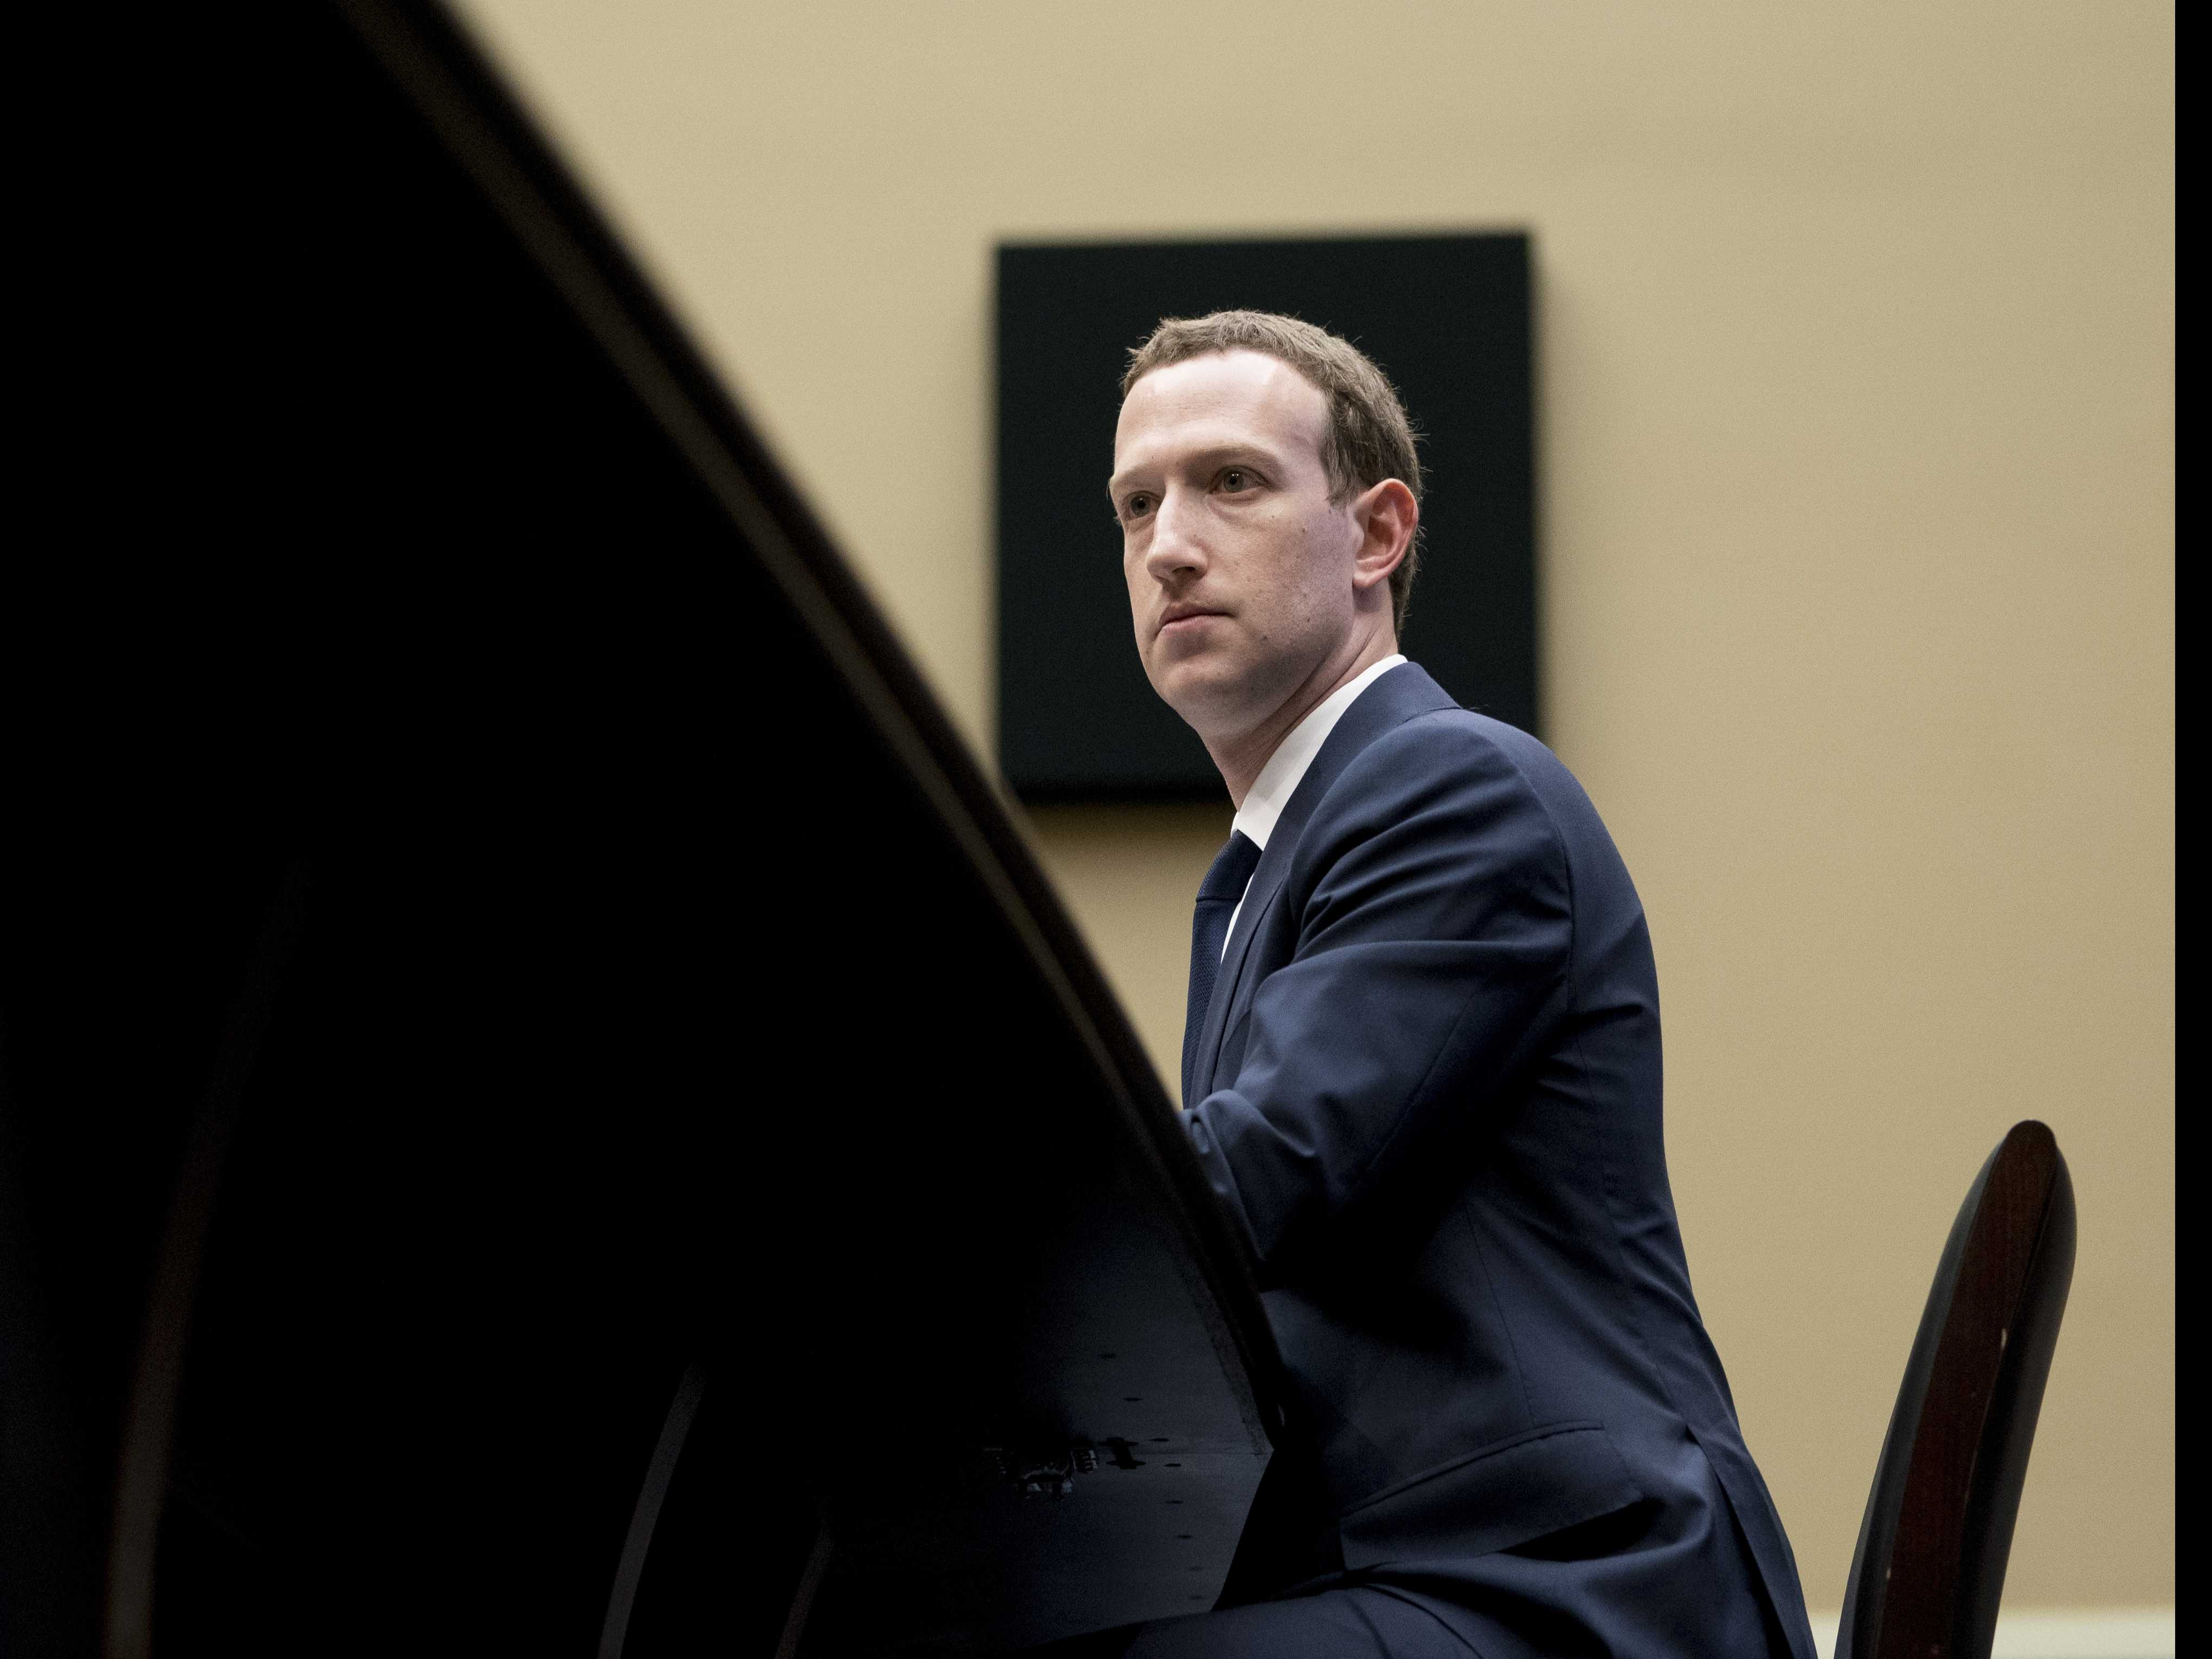 AP Explains: What Facebook's 'Privacy Vision' Really Means